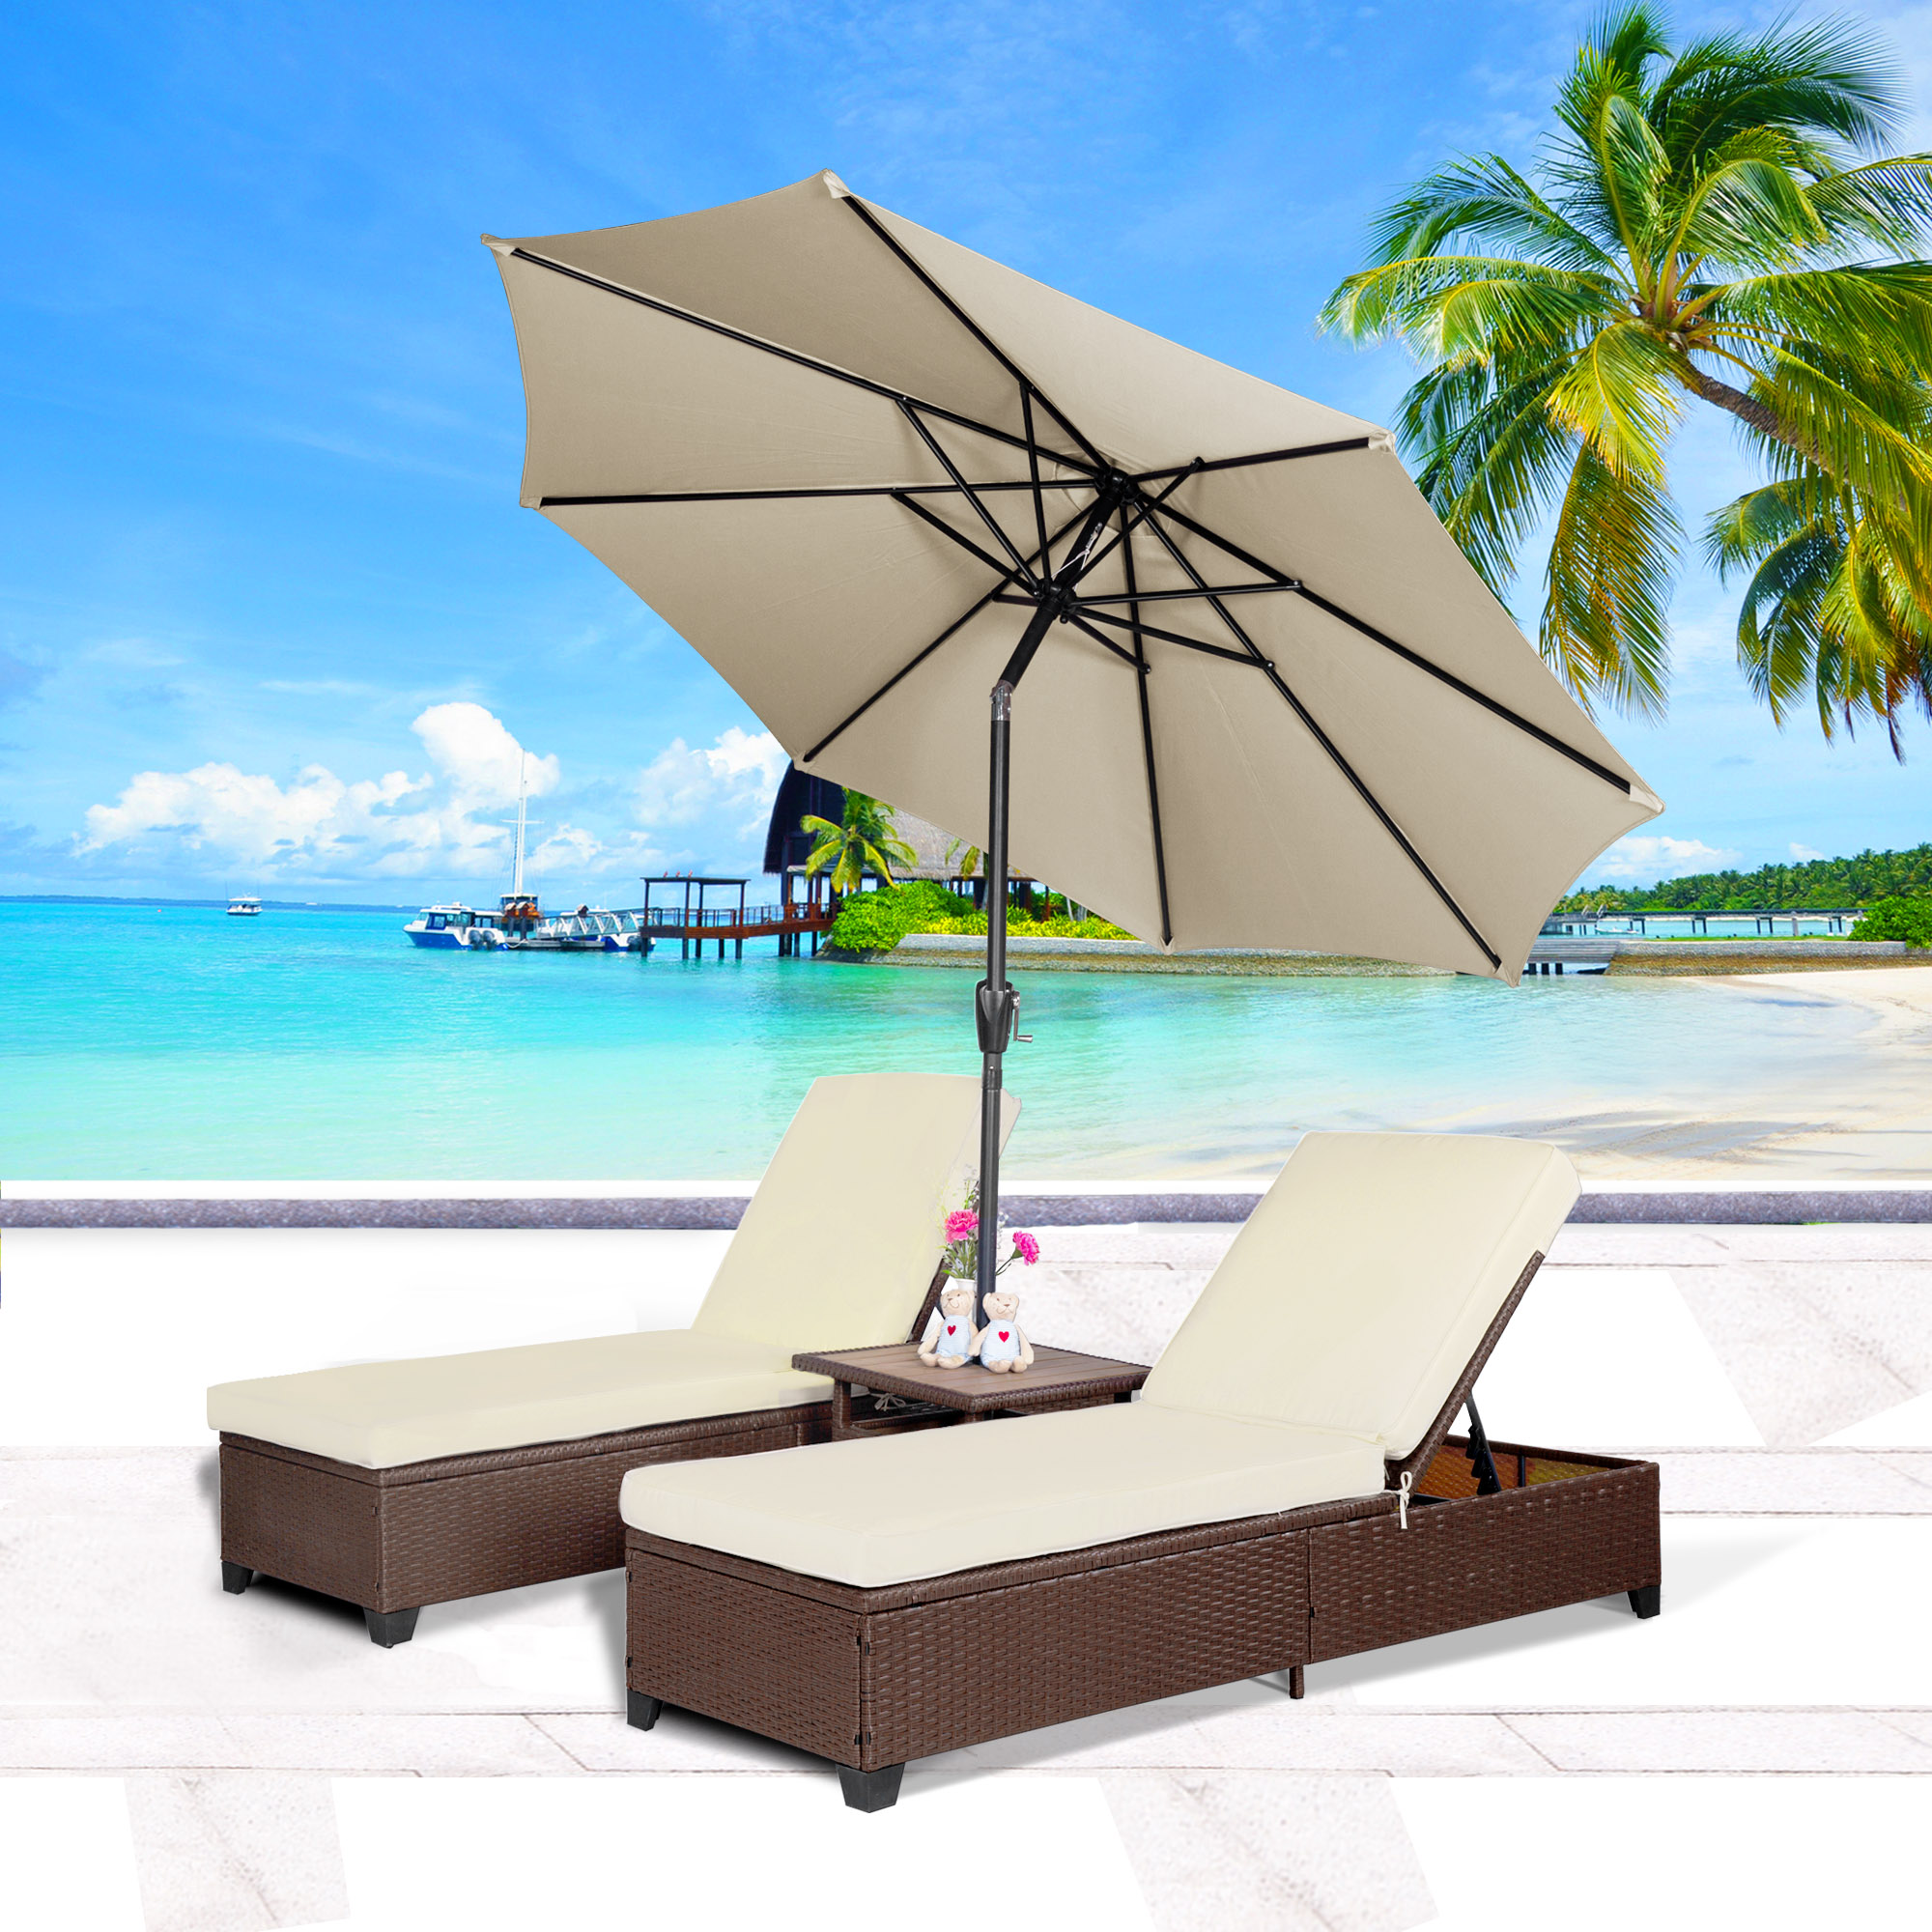 Cloud Mountain 4PC Outdoor Rattan Chaise Lounge Chair with 9' Umbrella Patio PE Wicker Rattan Furniture Adjustable Pool Lounge Chairs Table